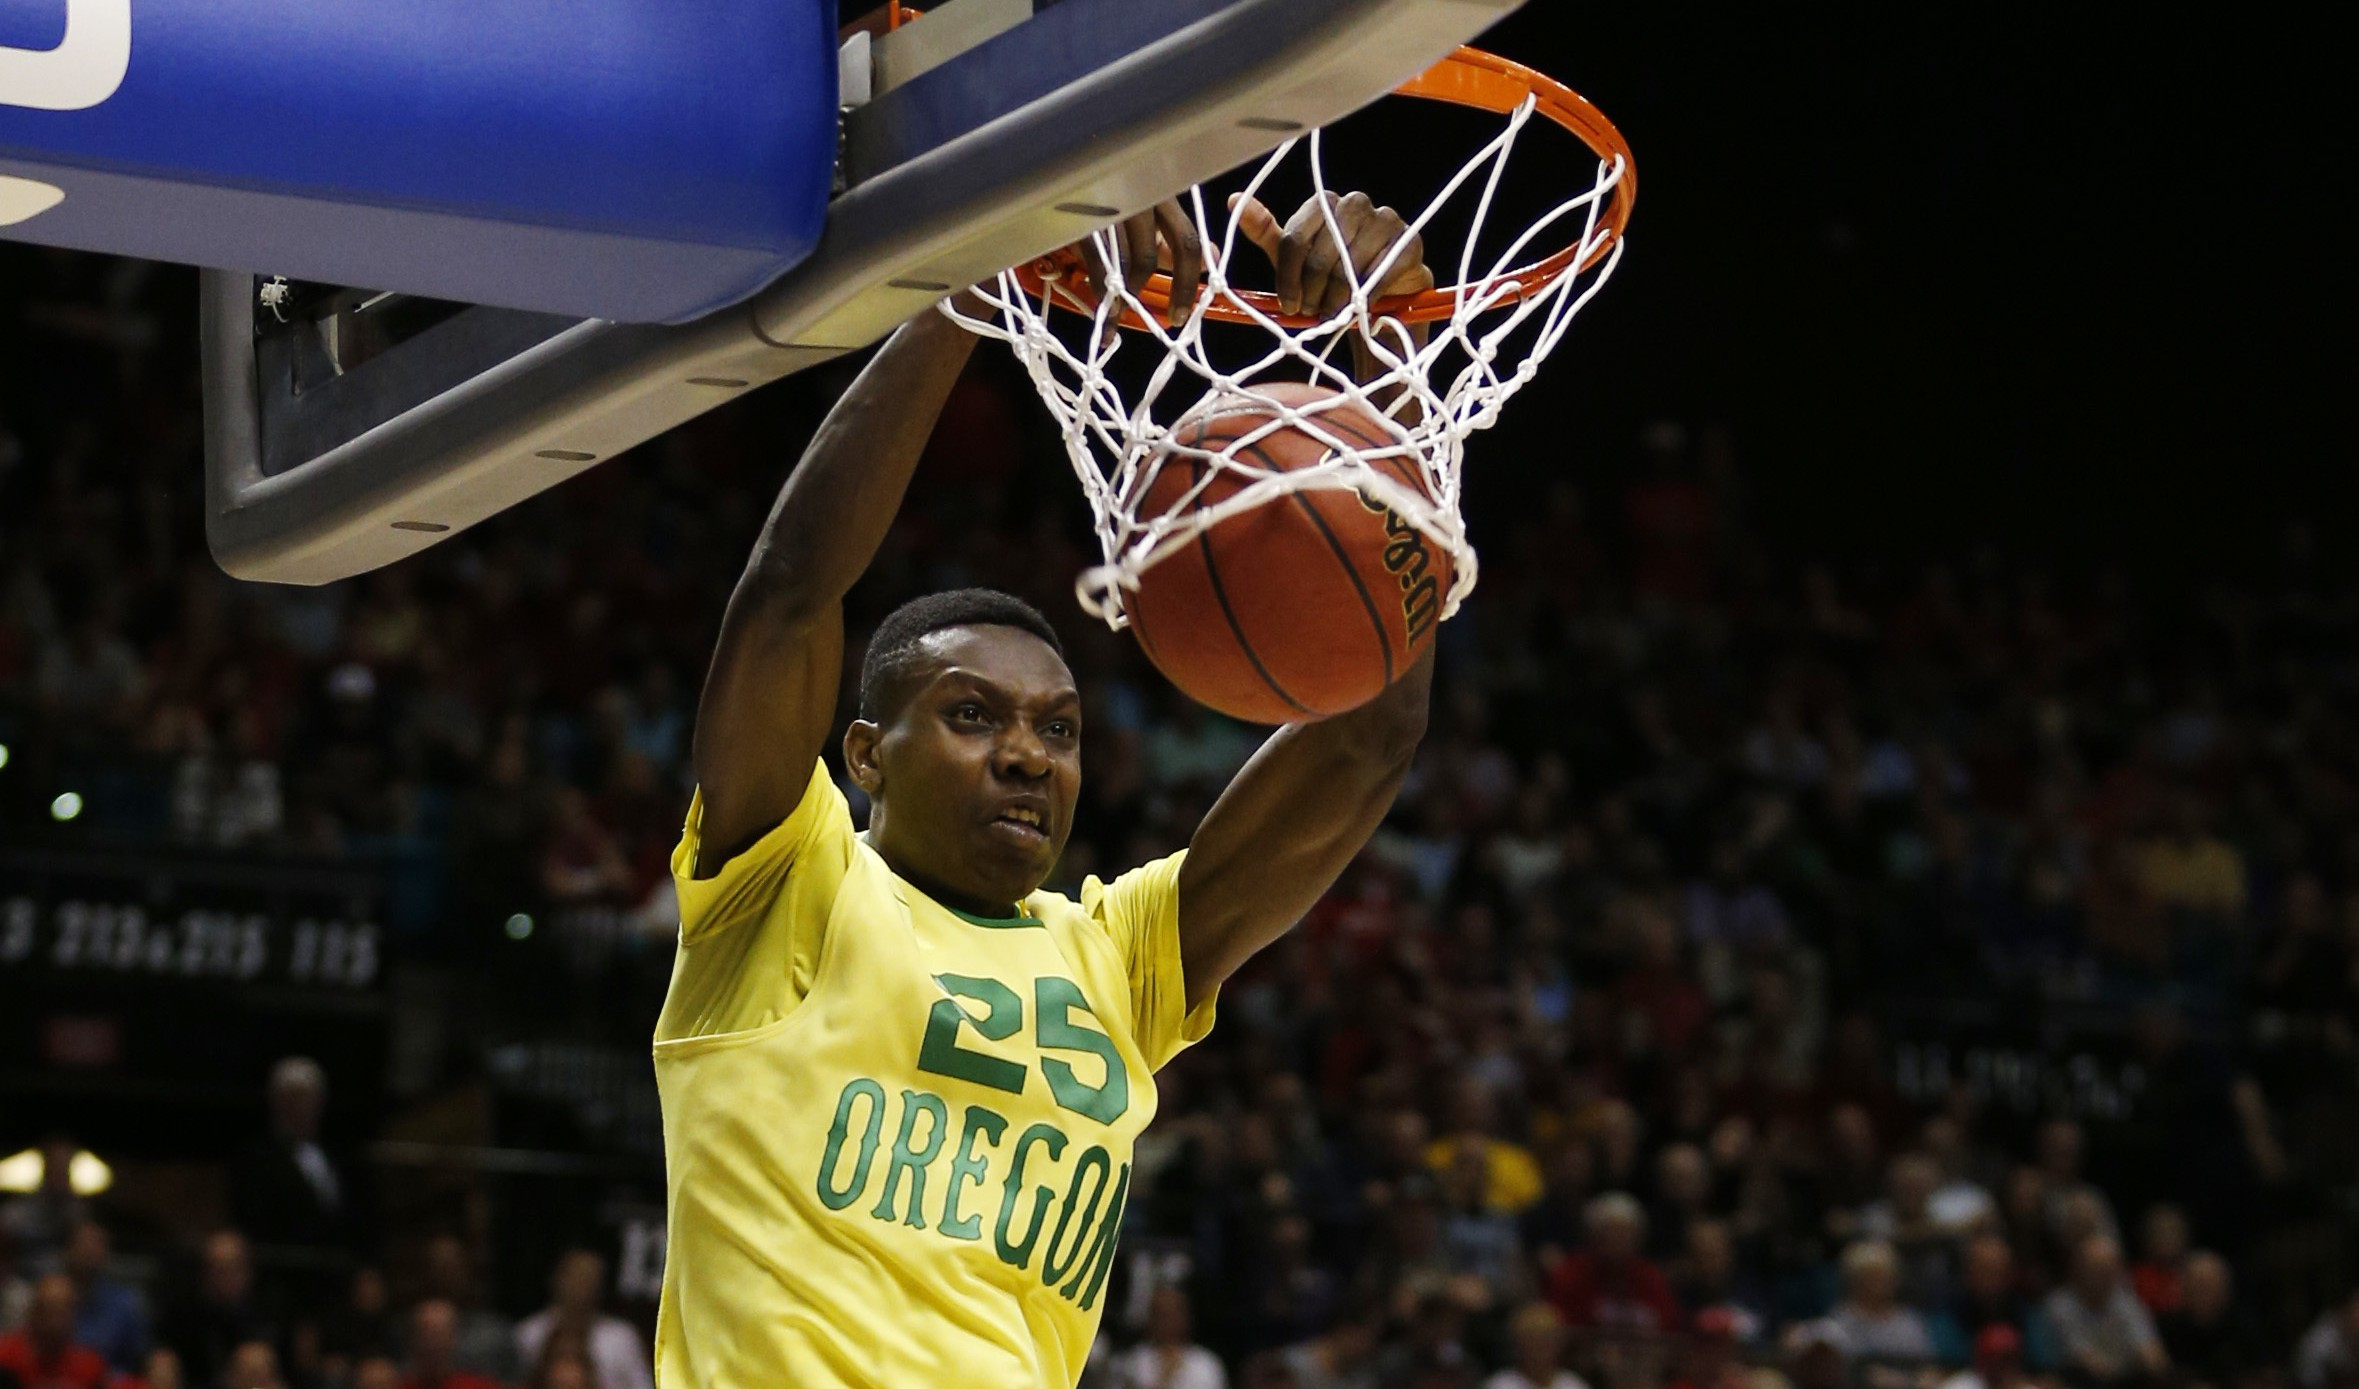 Oregon forward Chris Boucher dunks over Arizona forward Ryan Anderson (12) and center Dusan Ristic (14) during the second half of an NCAA college basketball game in the semifinals of the Pac-12 men's tournament Friday, March 11, 2016, in Las Vegas. Oregon won in overtime, 95-89. (AP Photo/John Locher)